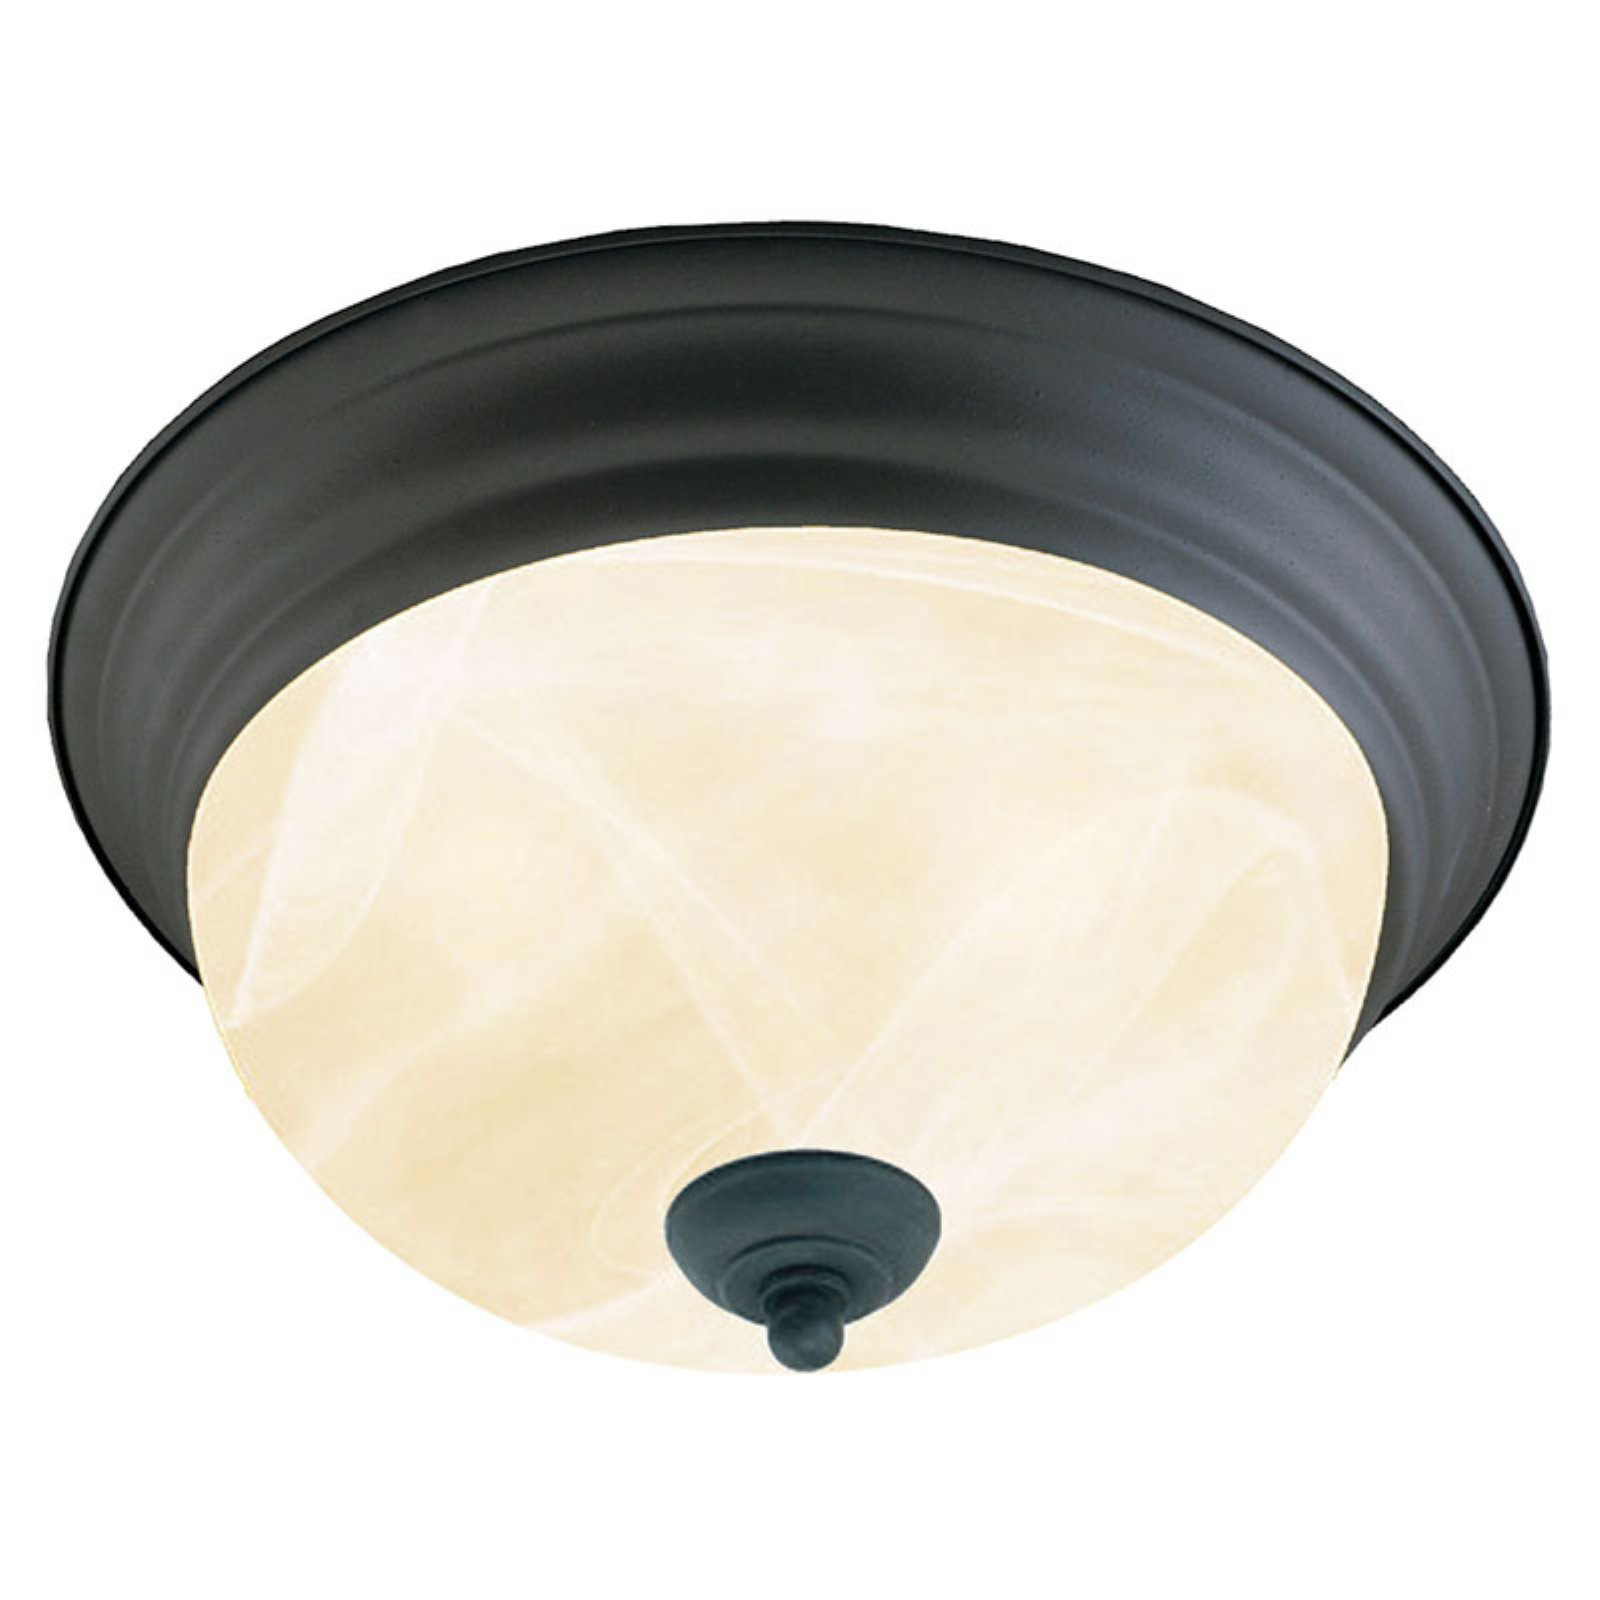 Thomas Lighting Harmony SL877263 Flush Mount Light by ELK